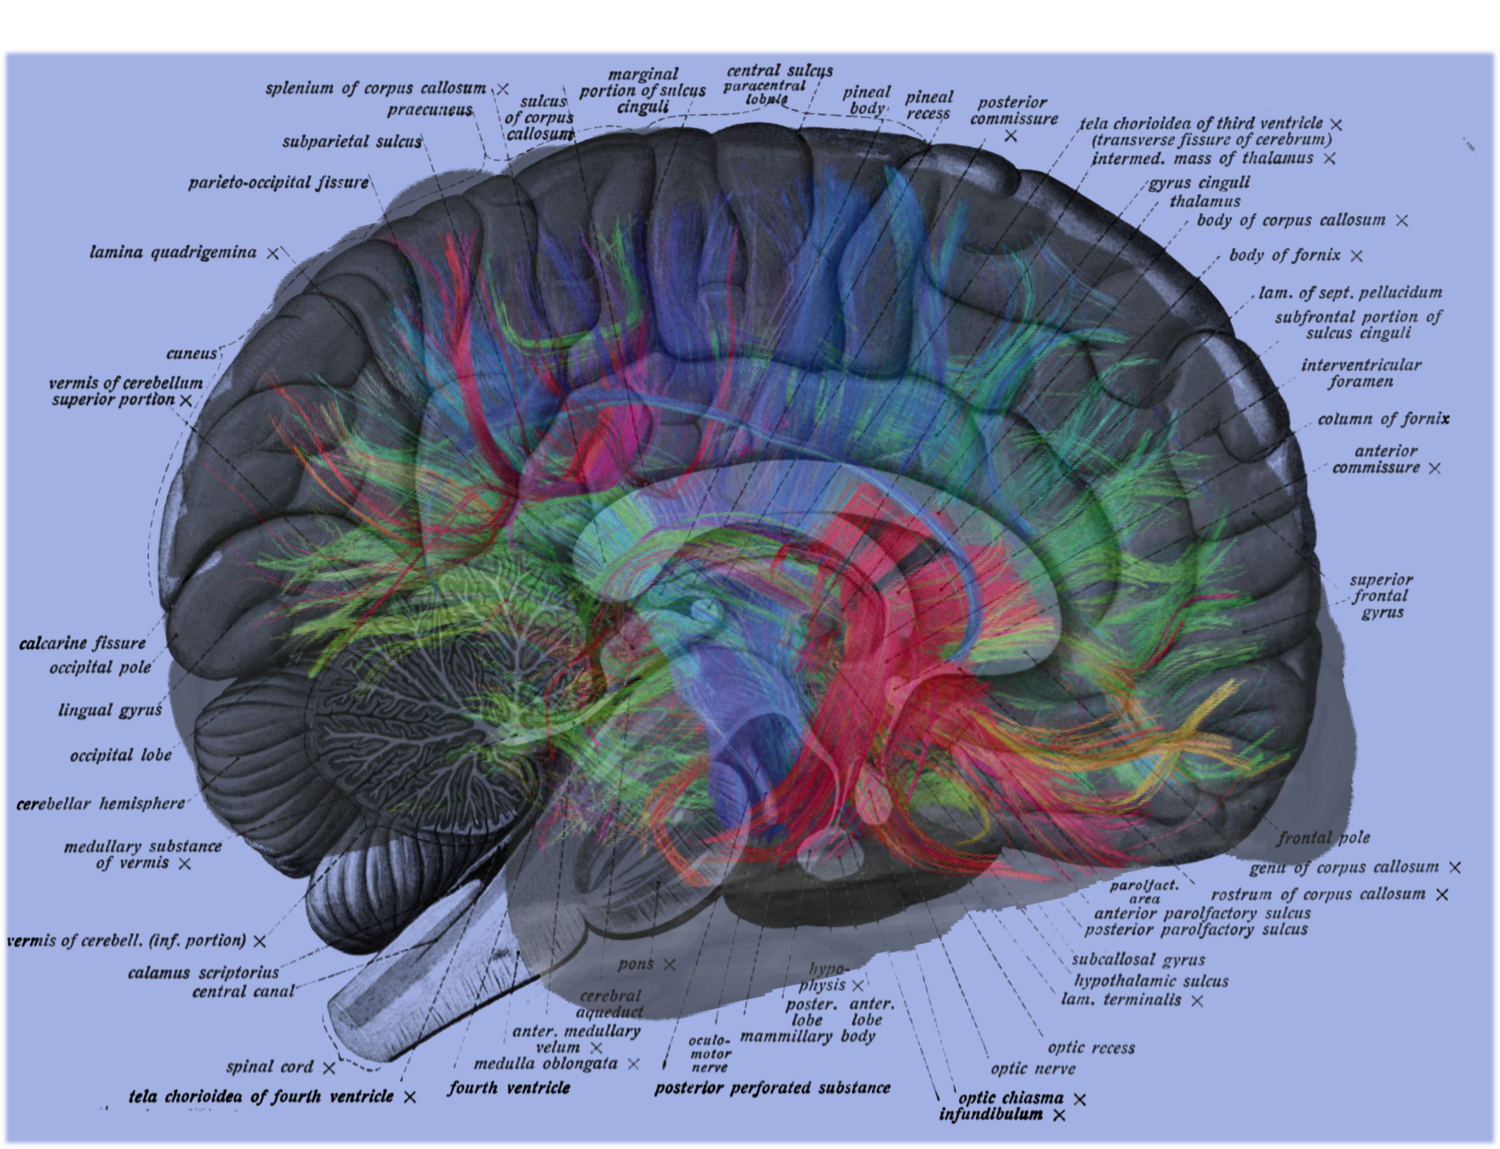 Mri Neural Brain Map Overlay On Human Brain Label Diagram Jacob Irwin